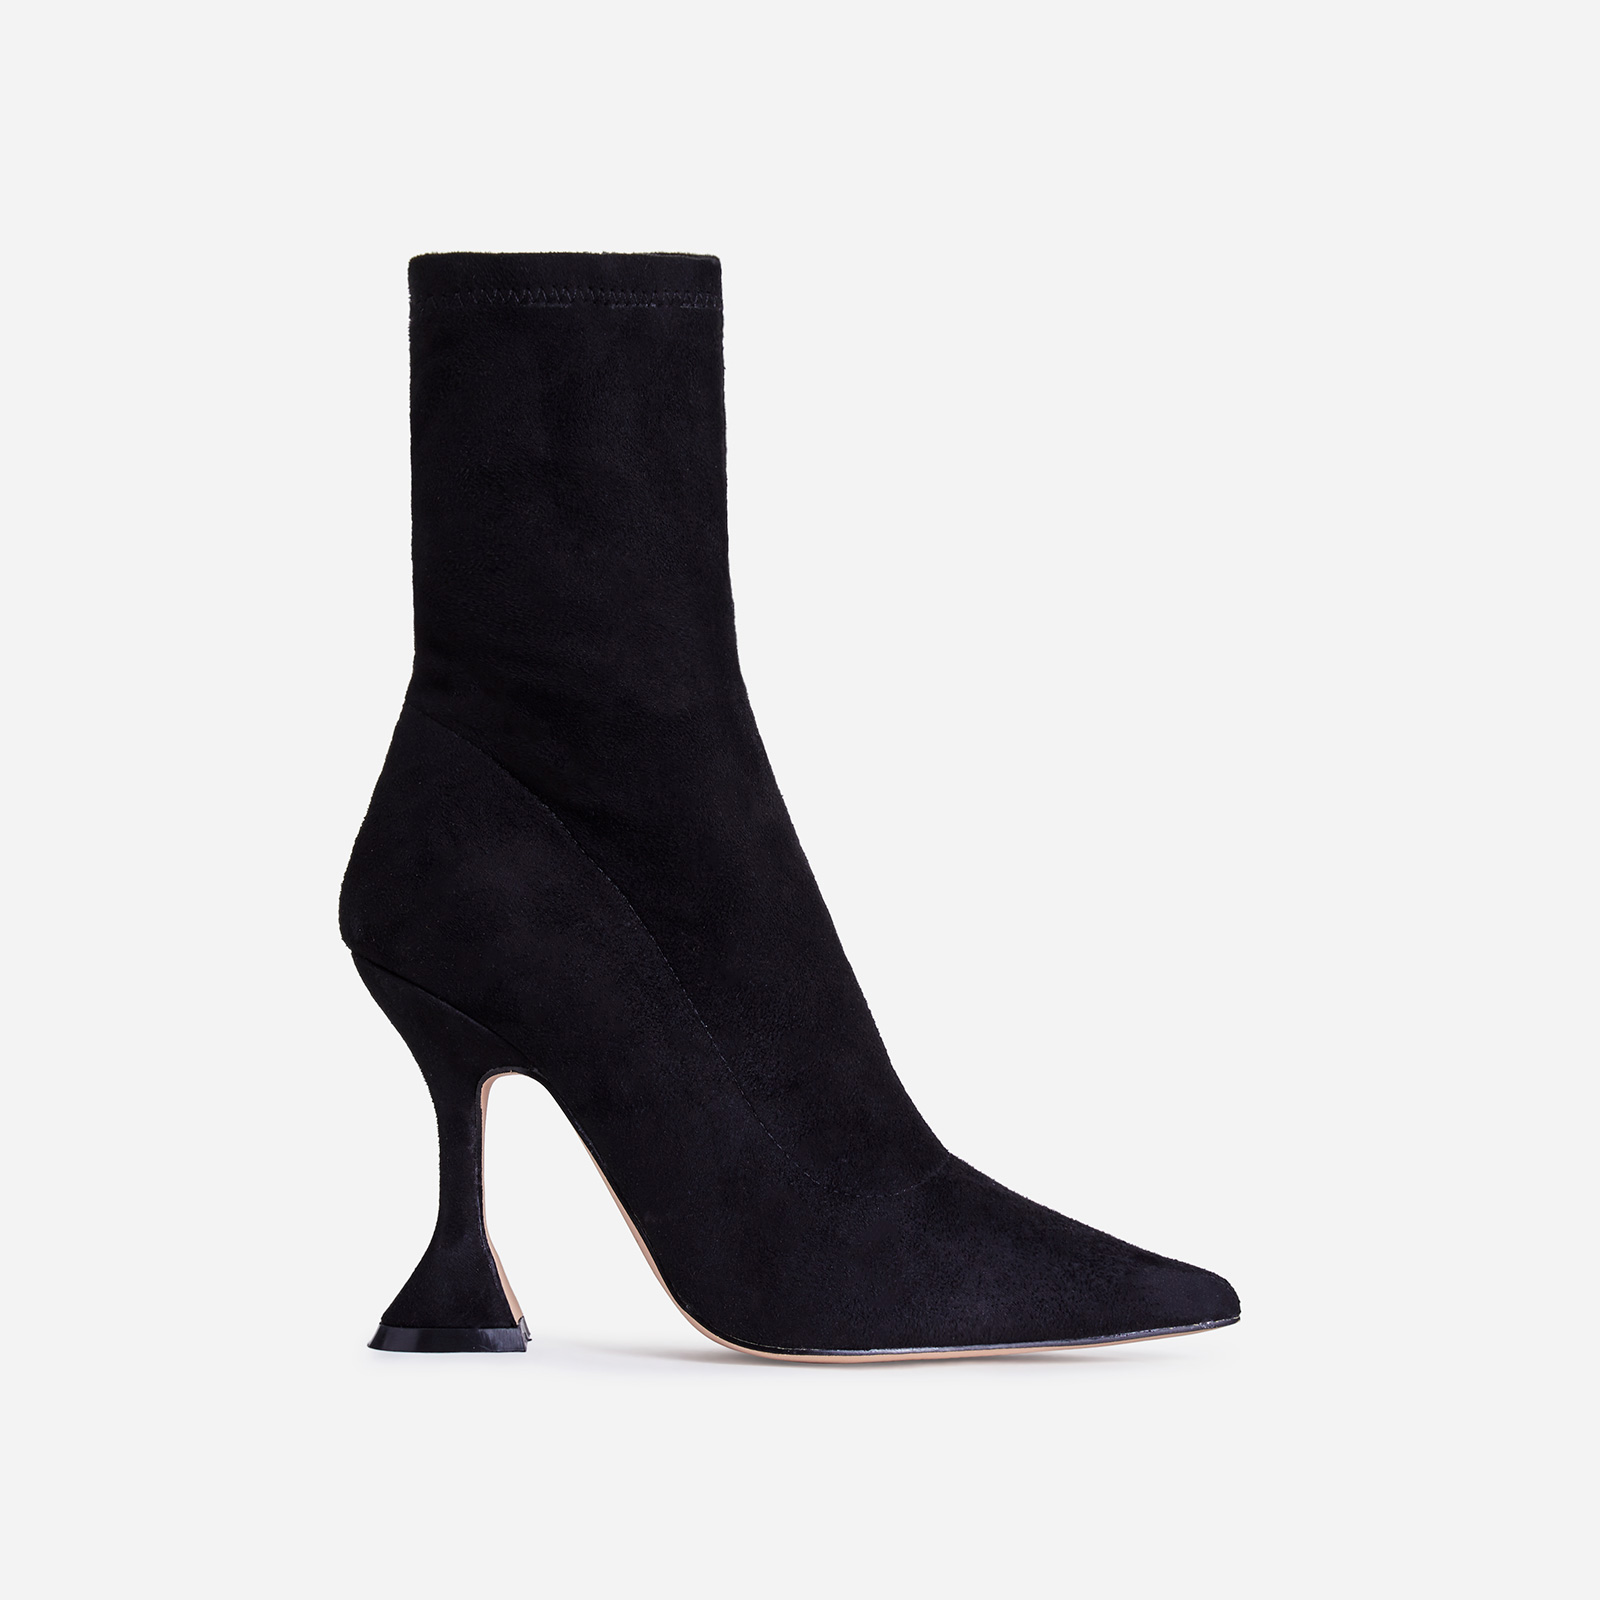 Flore Pyramid Heel Ankle Boot In Black Faux Suede